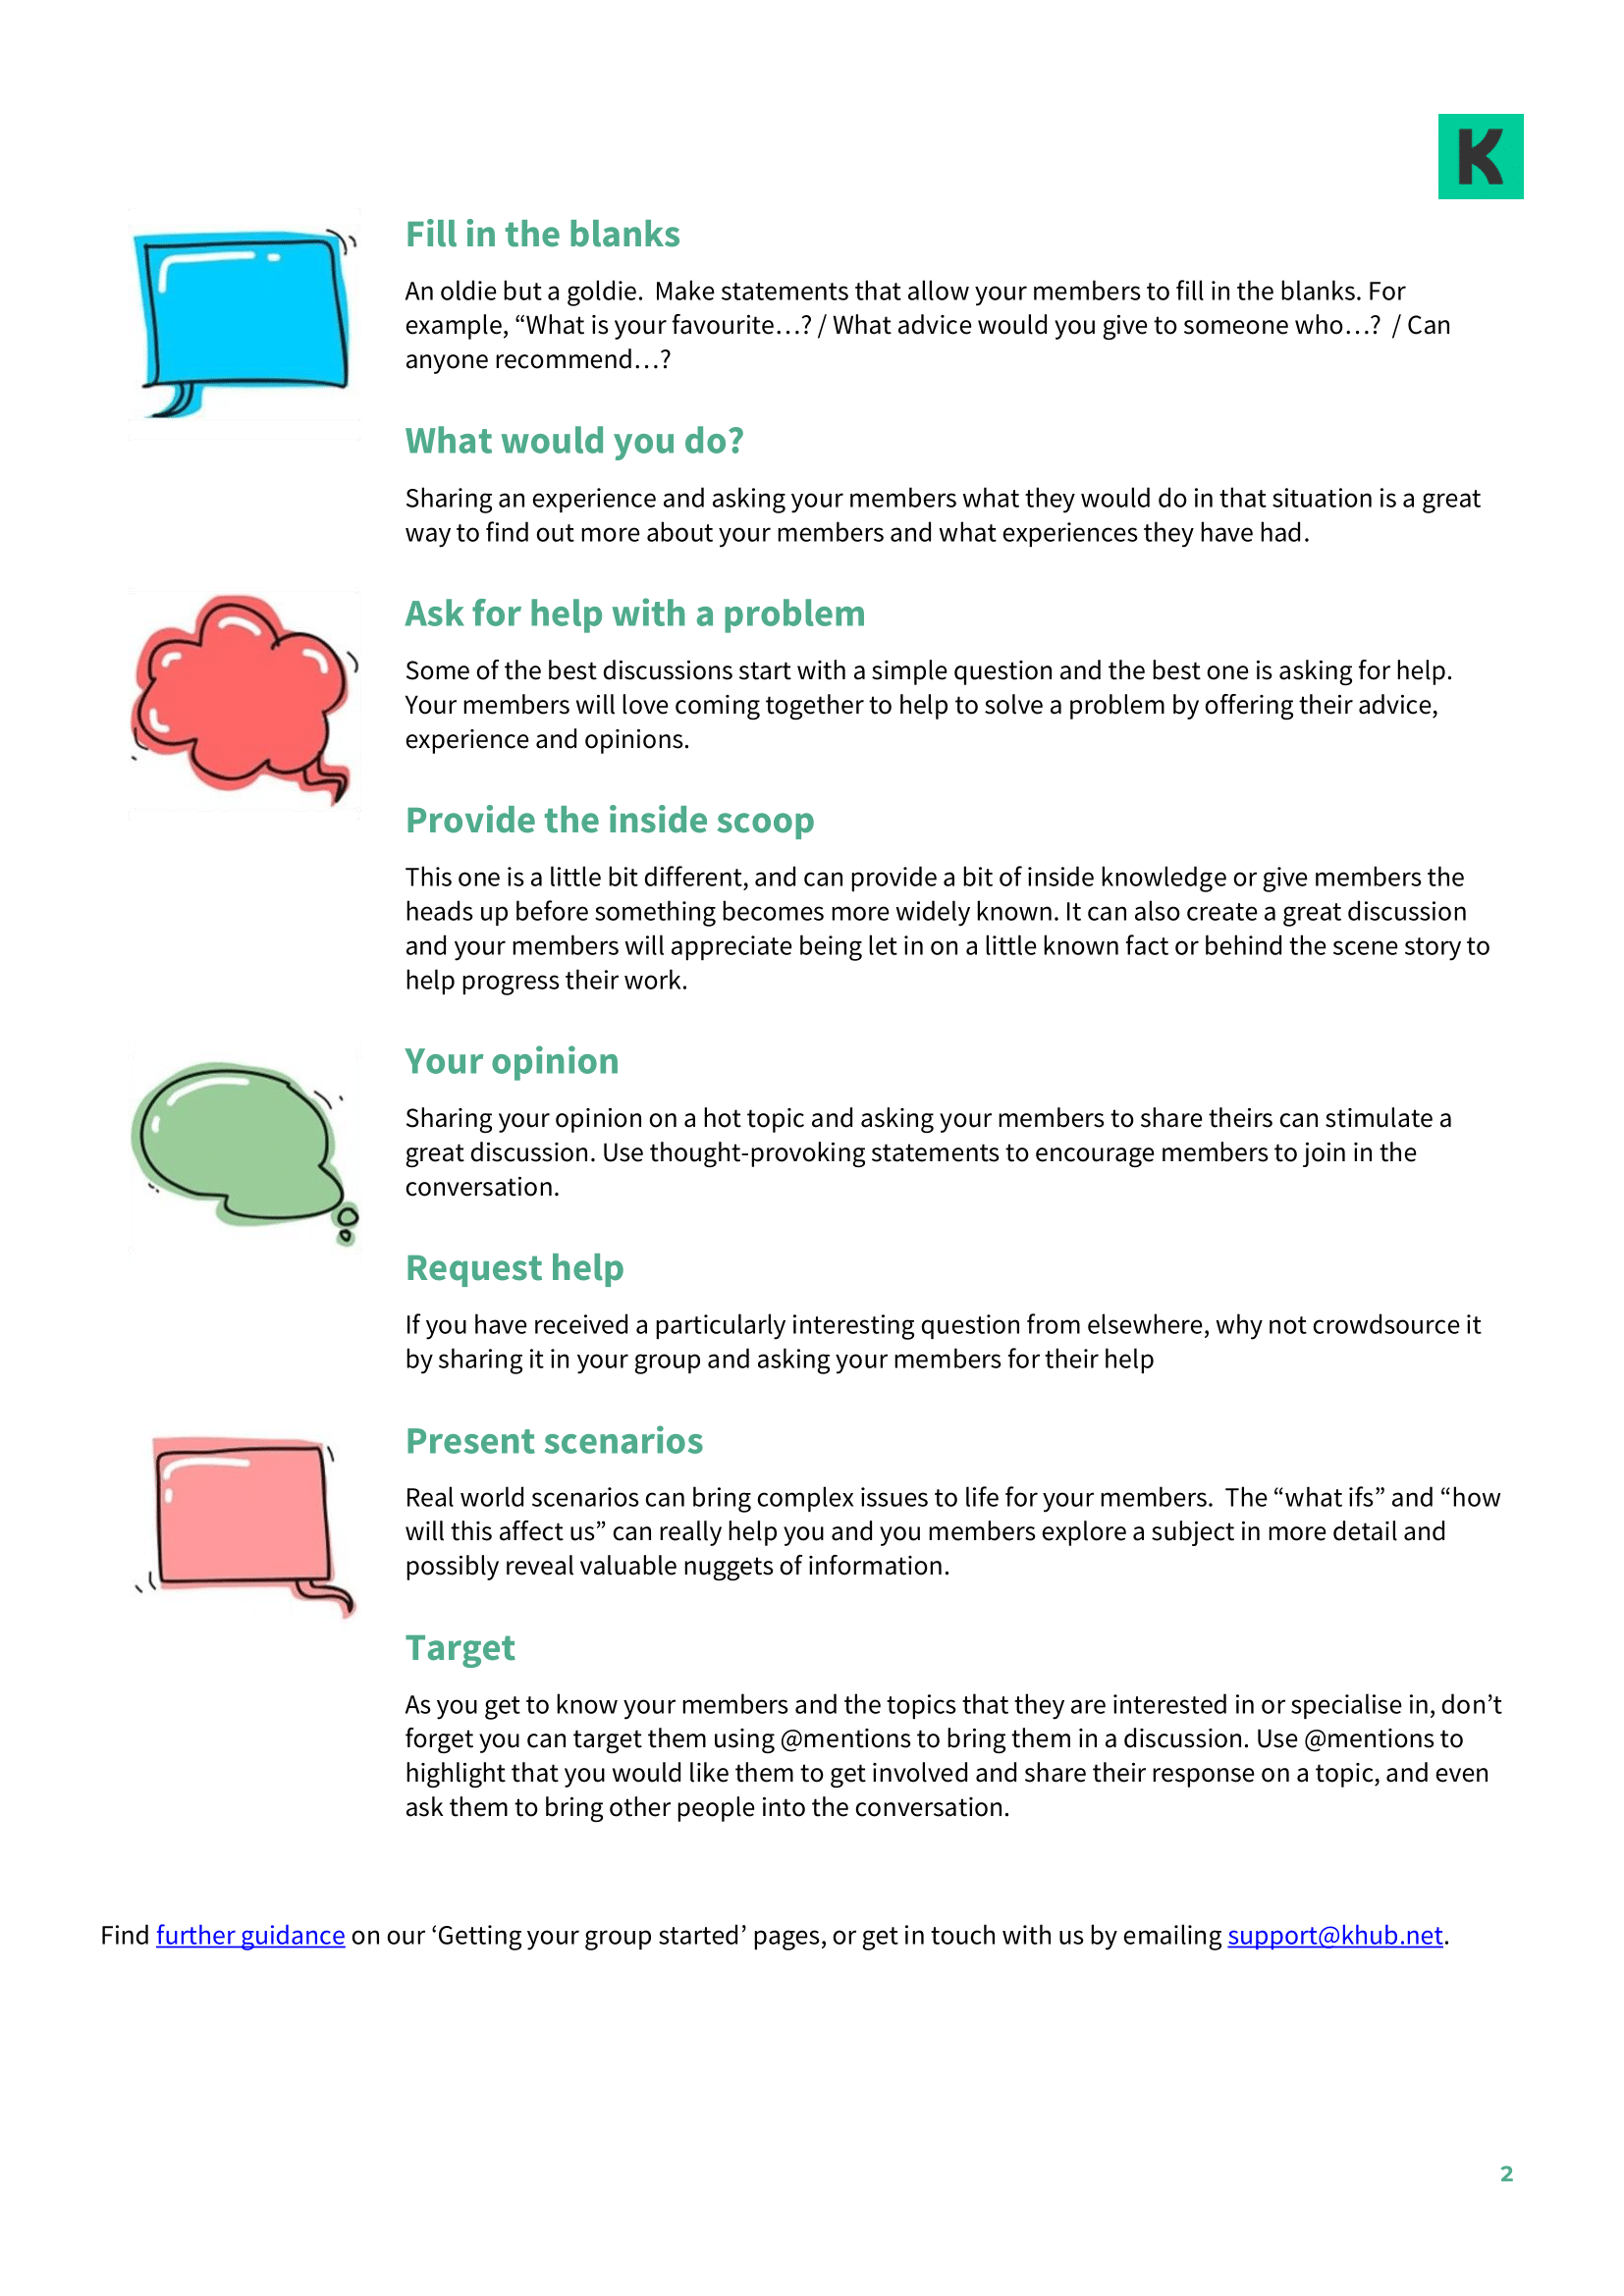 14 Conversation starters for Online Group Facilitators (part 2)